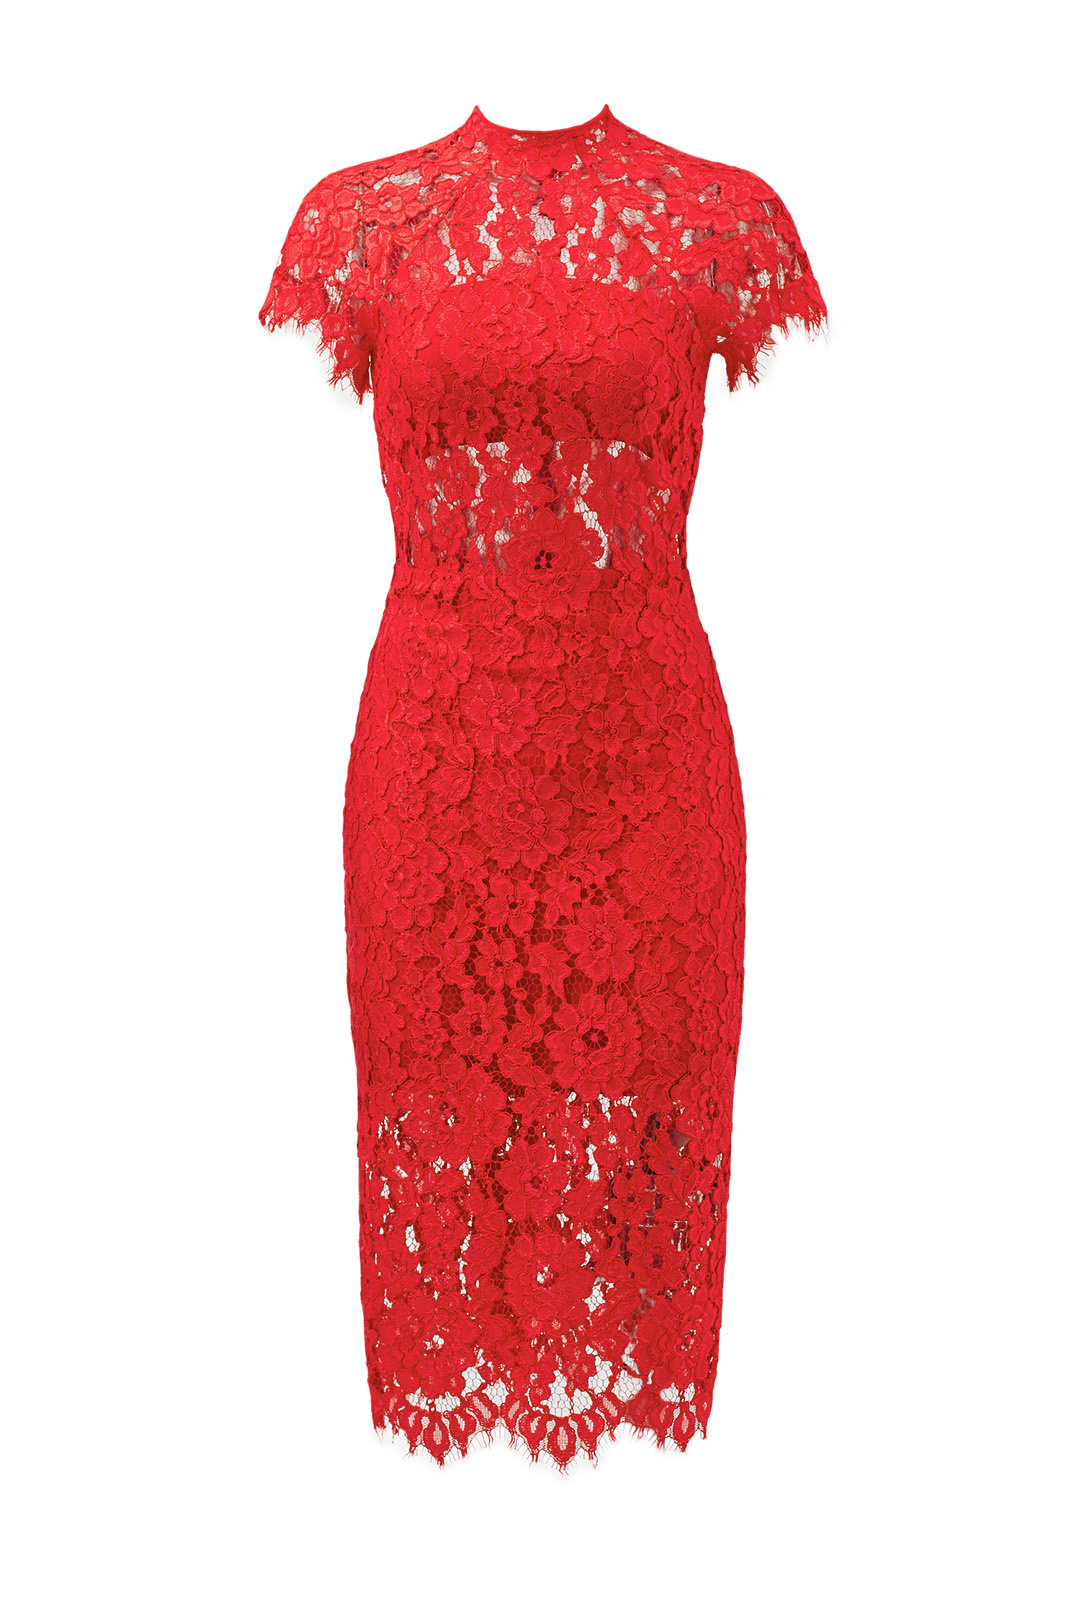 Red Lace and Perfect for any body type, this dress from Rent The Runway just needs the right pair of shoes!